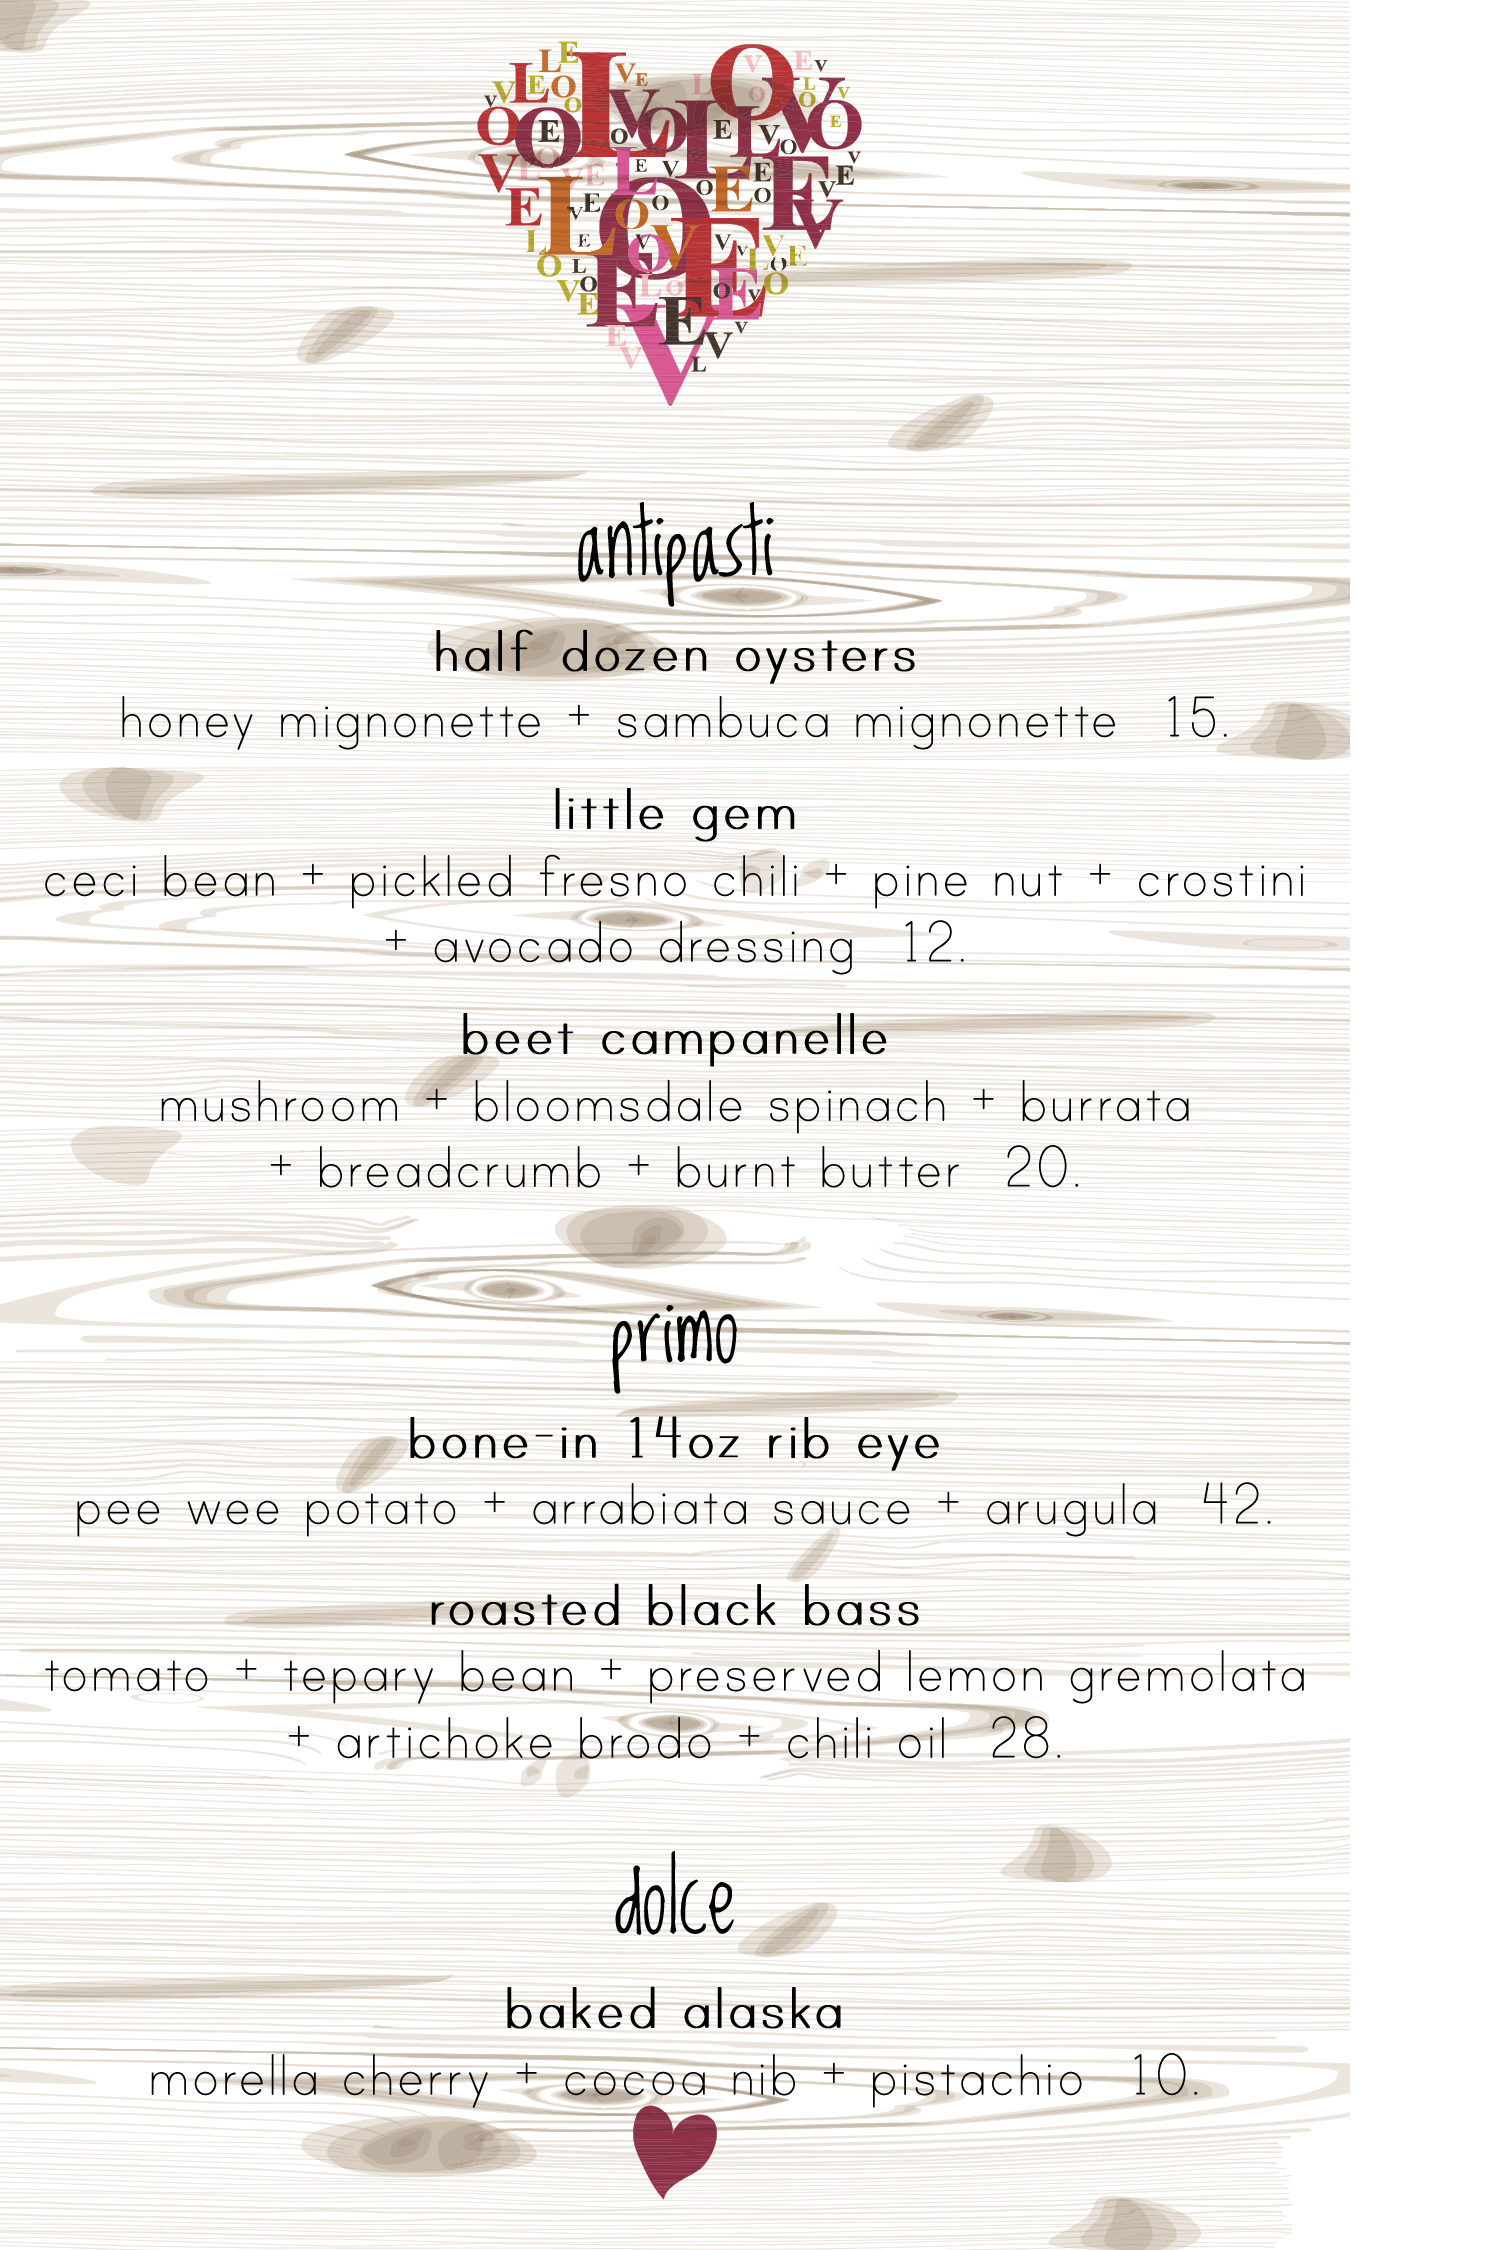 Cucina Enoteca Menu The Market Place Archives Page 7 Of 15 Orange County Zest